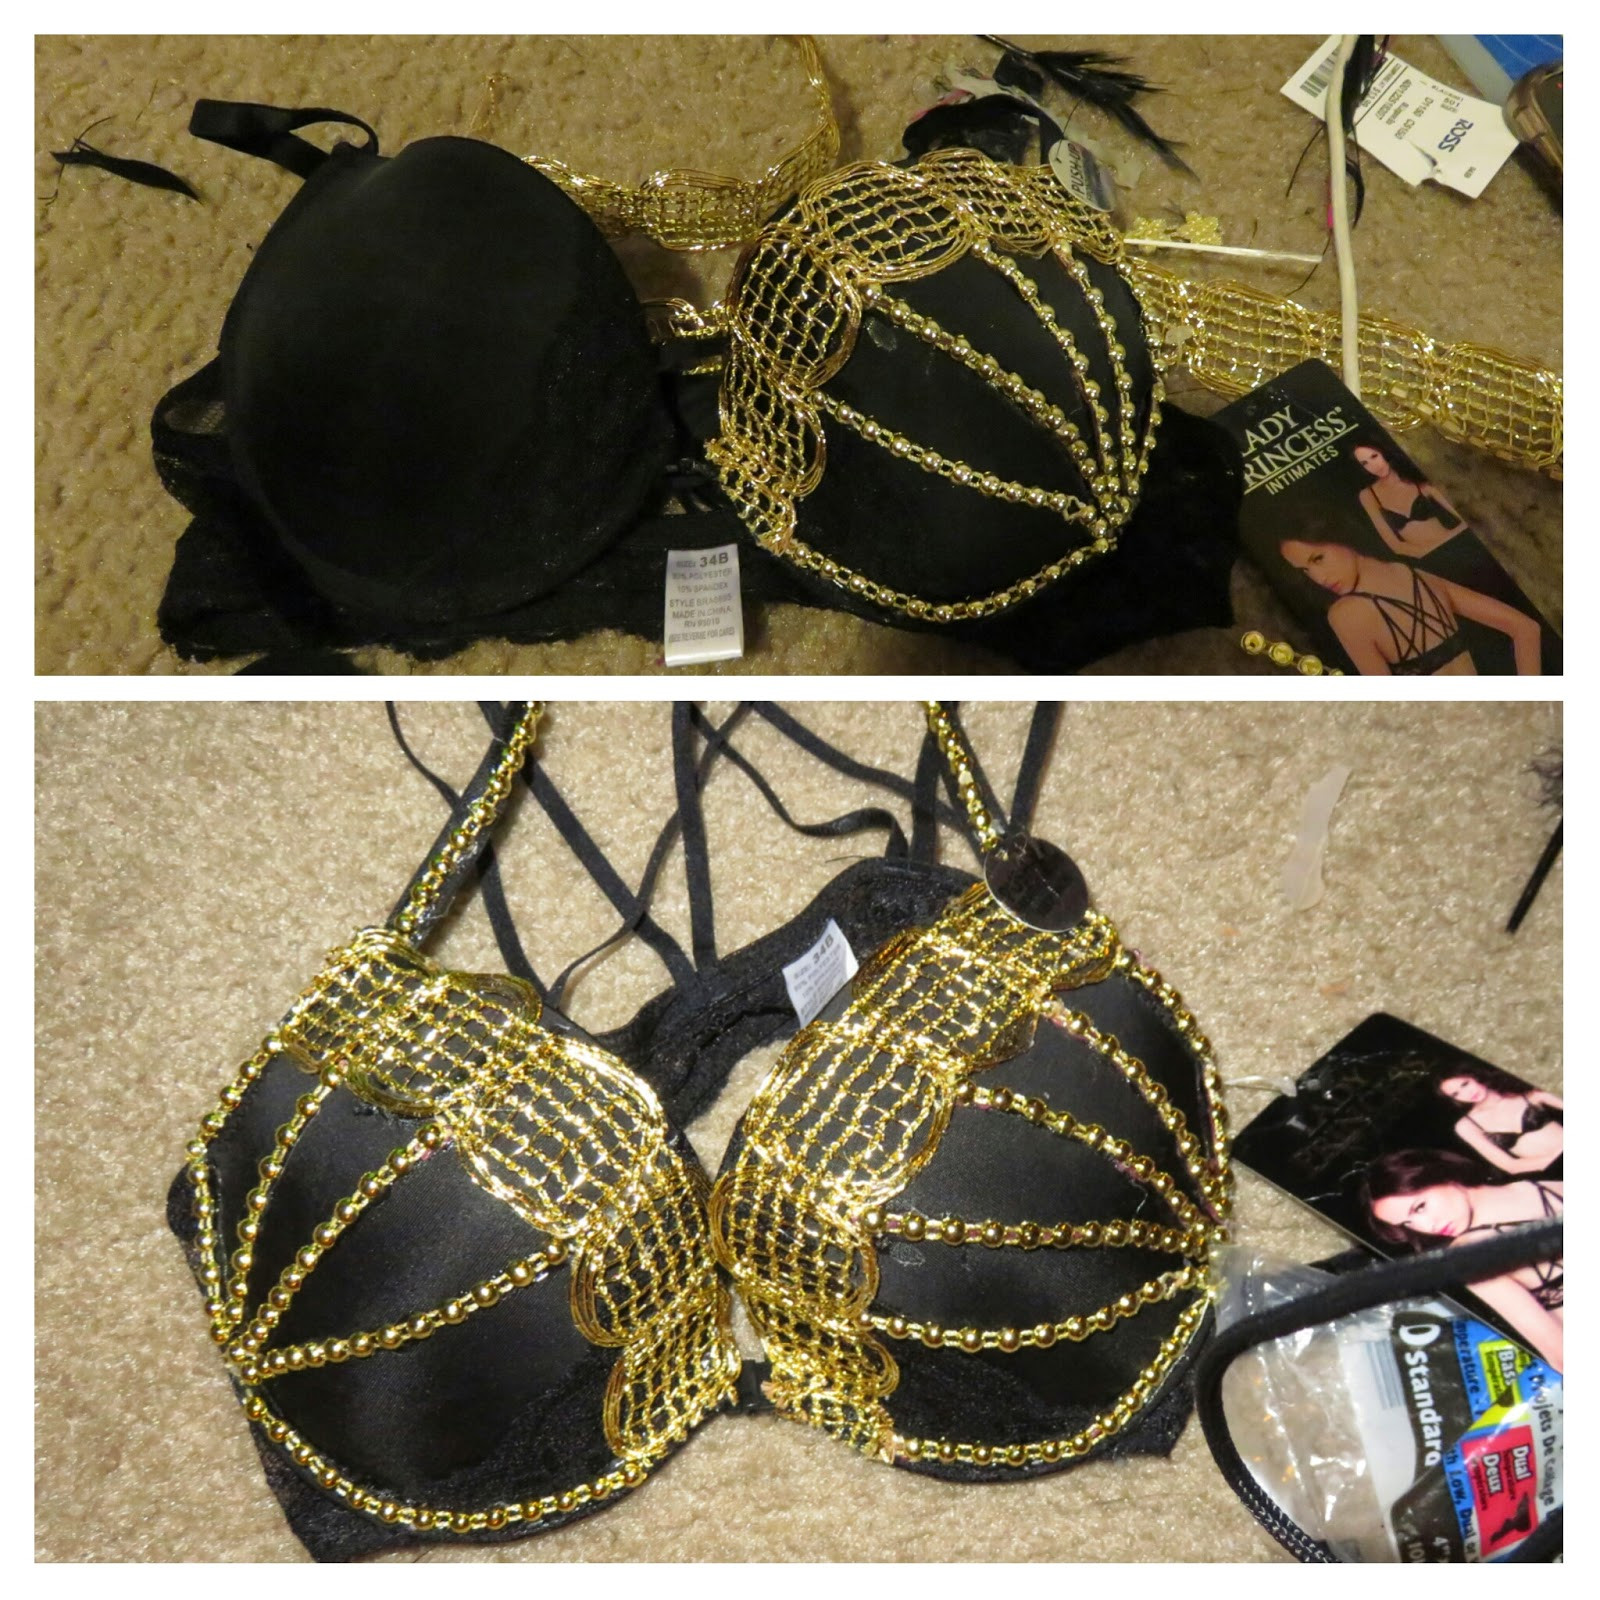 Best ideas about DIY Carnival Costume . Save or Pin AngelaPanama DIY Refurbished Carnival Costumes Now.